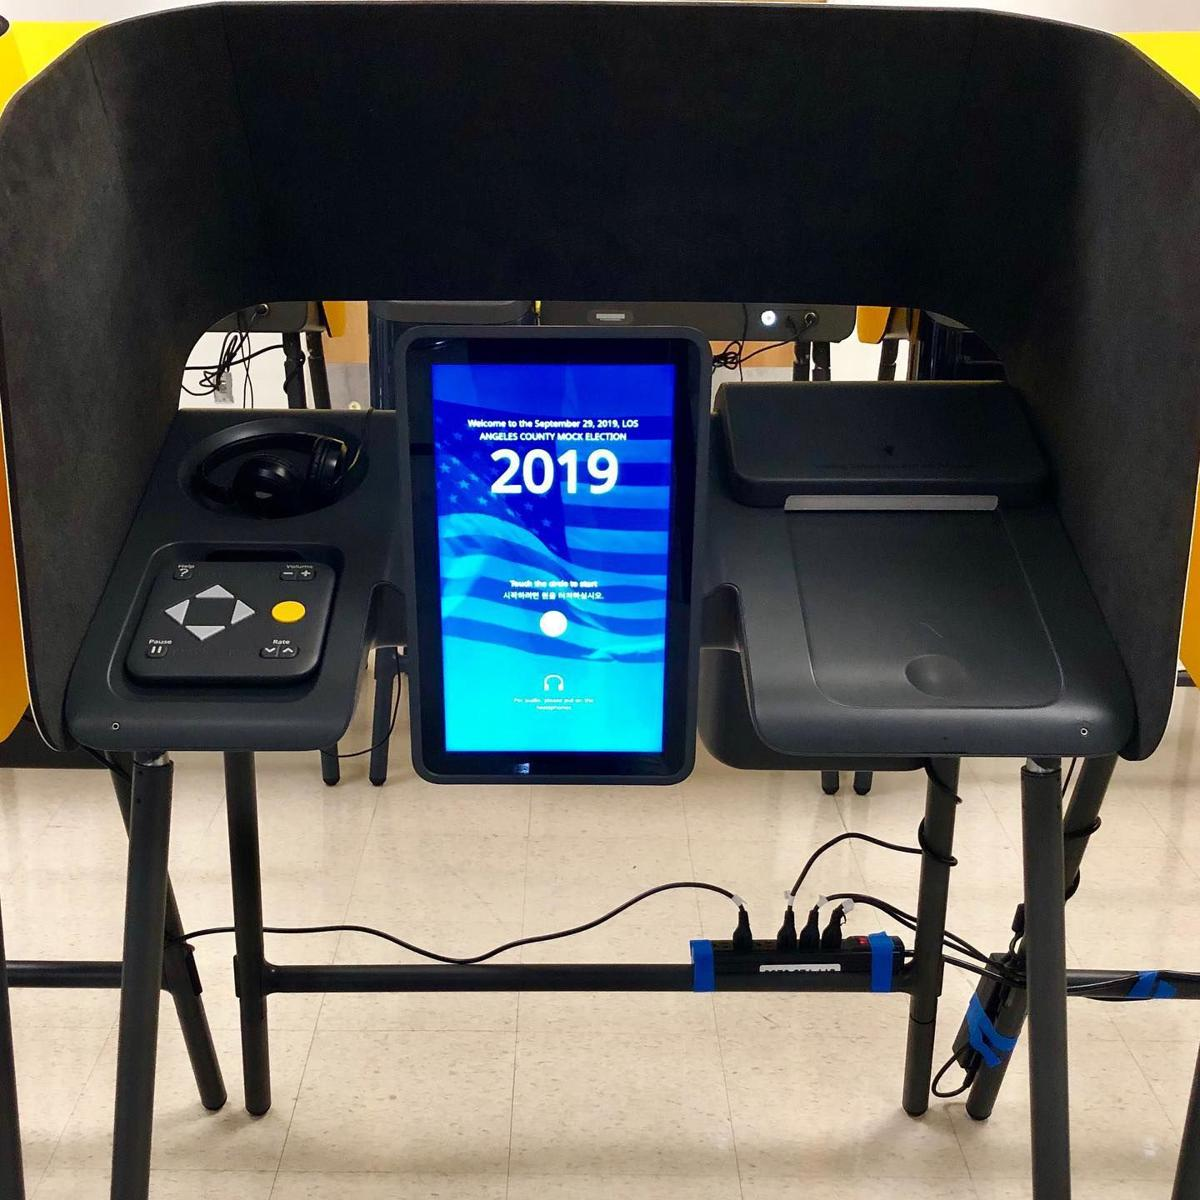 New LA County voting system screen